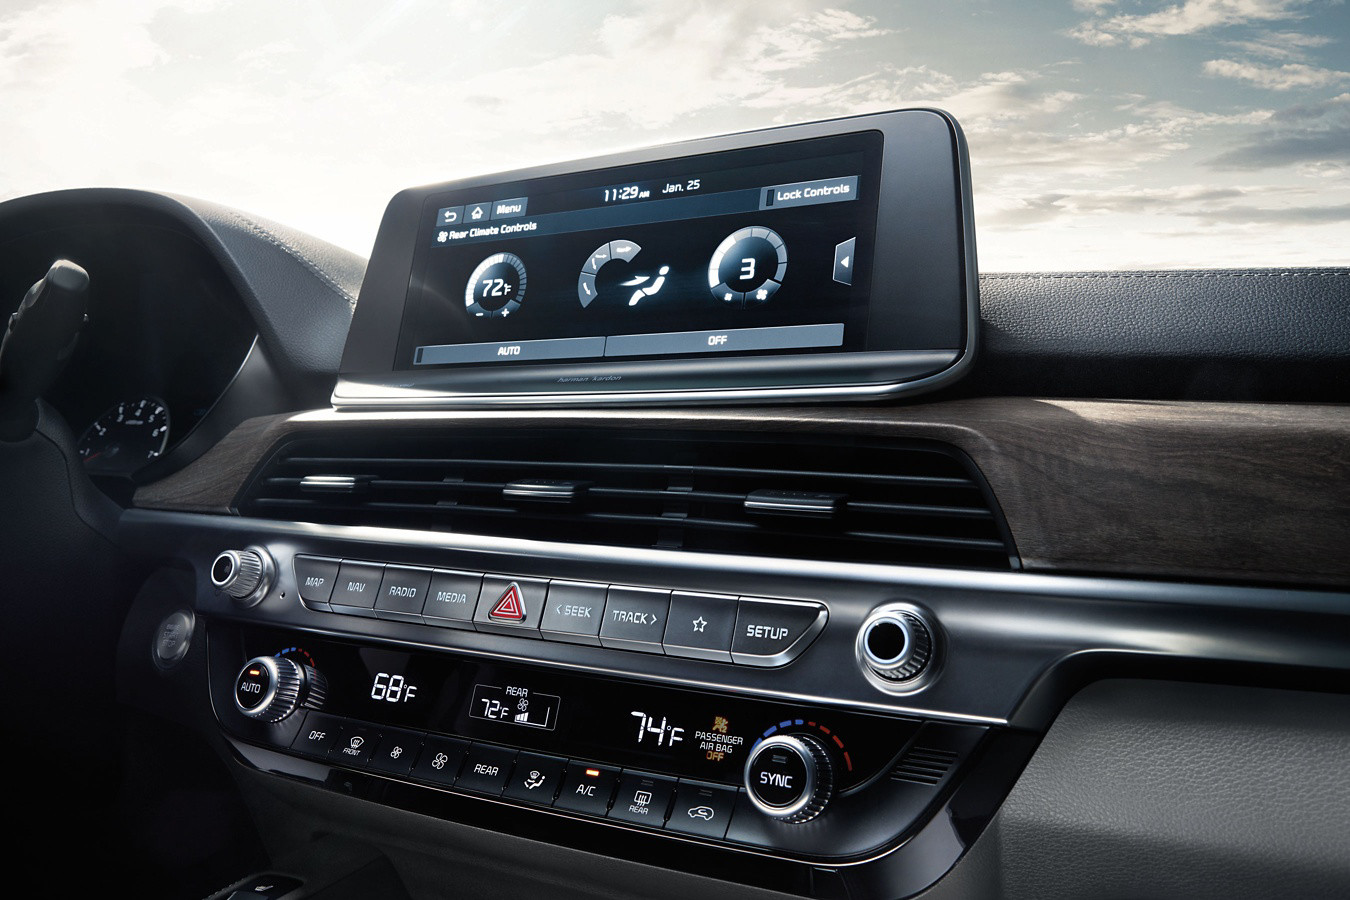 Touchscreen in the 2020 Telluride